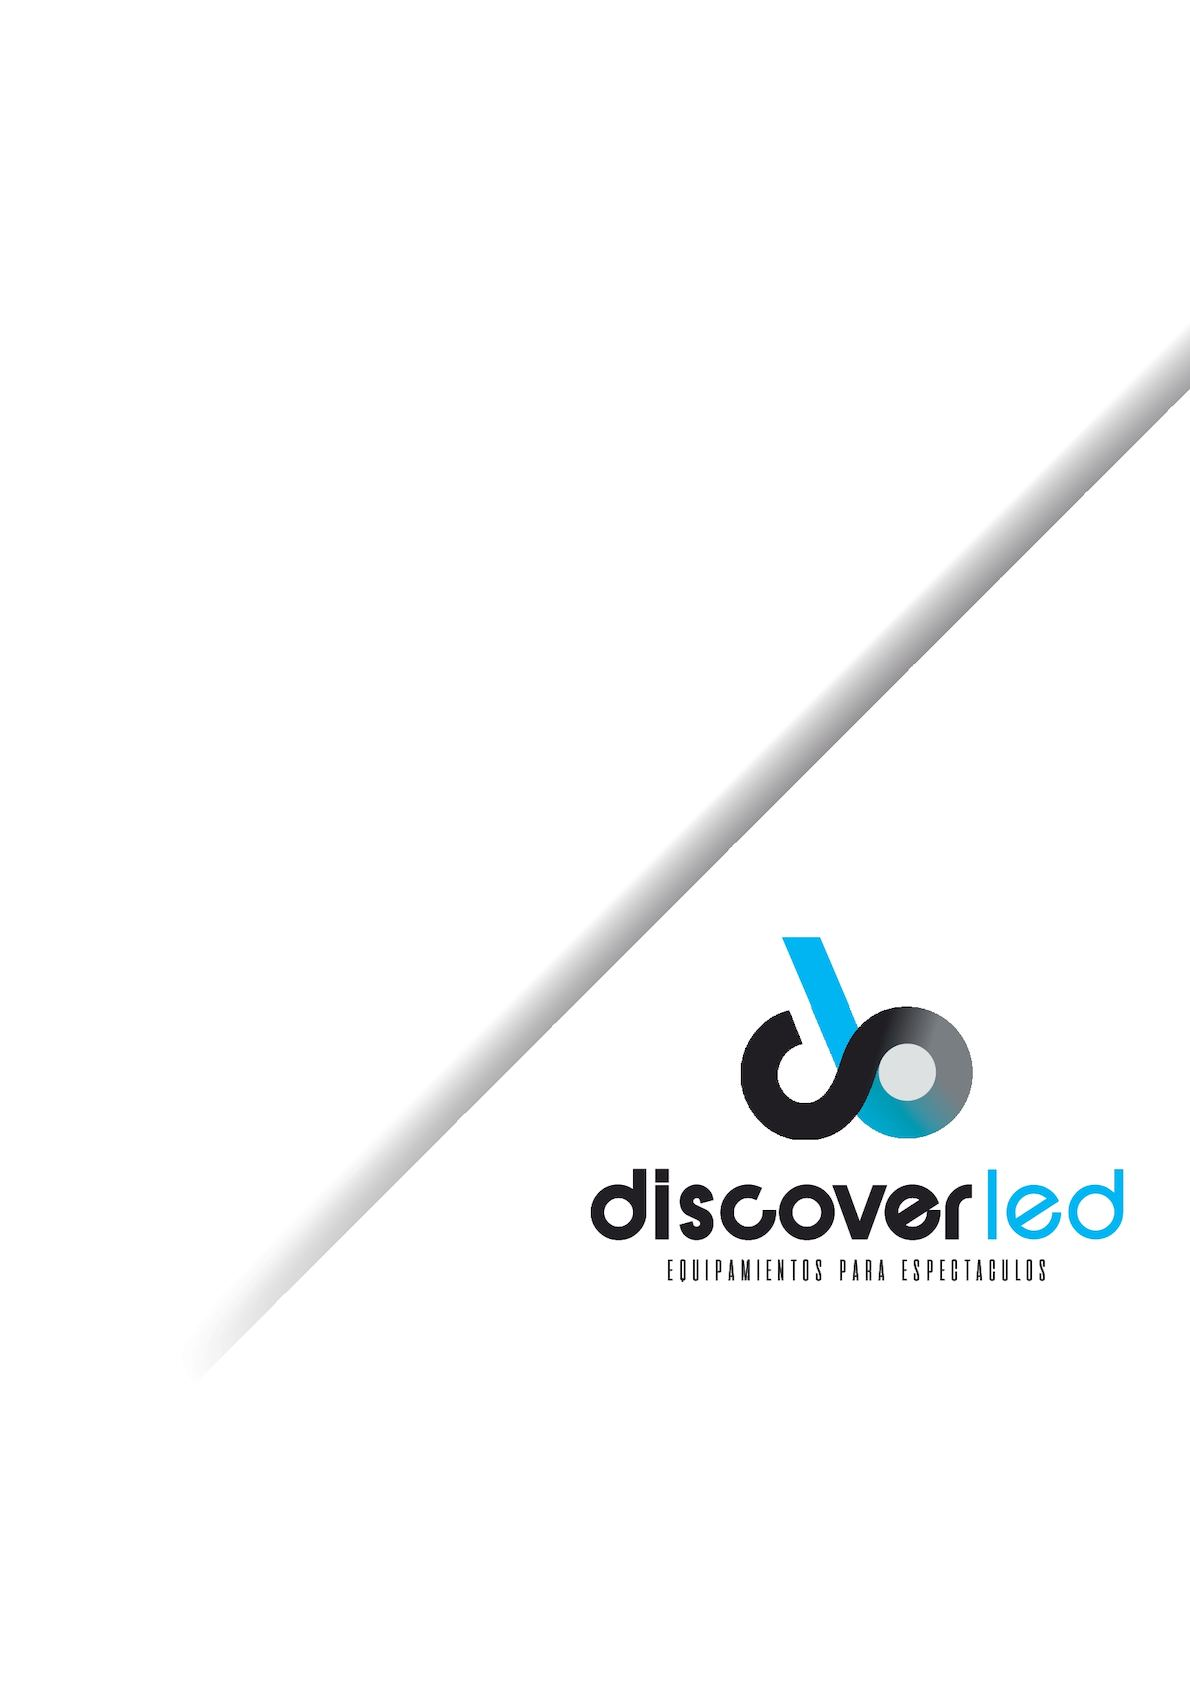 Catalogo_DISCOVER LED